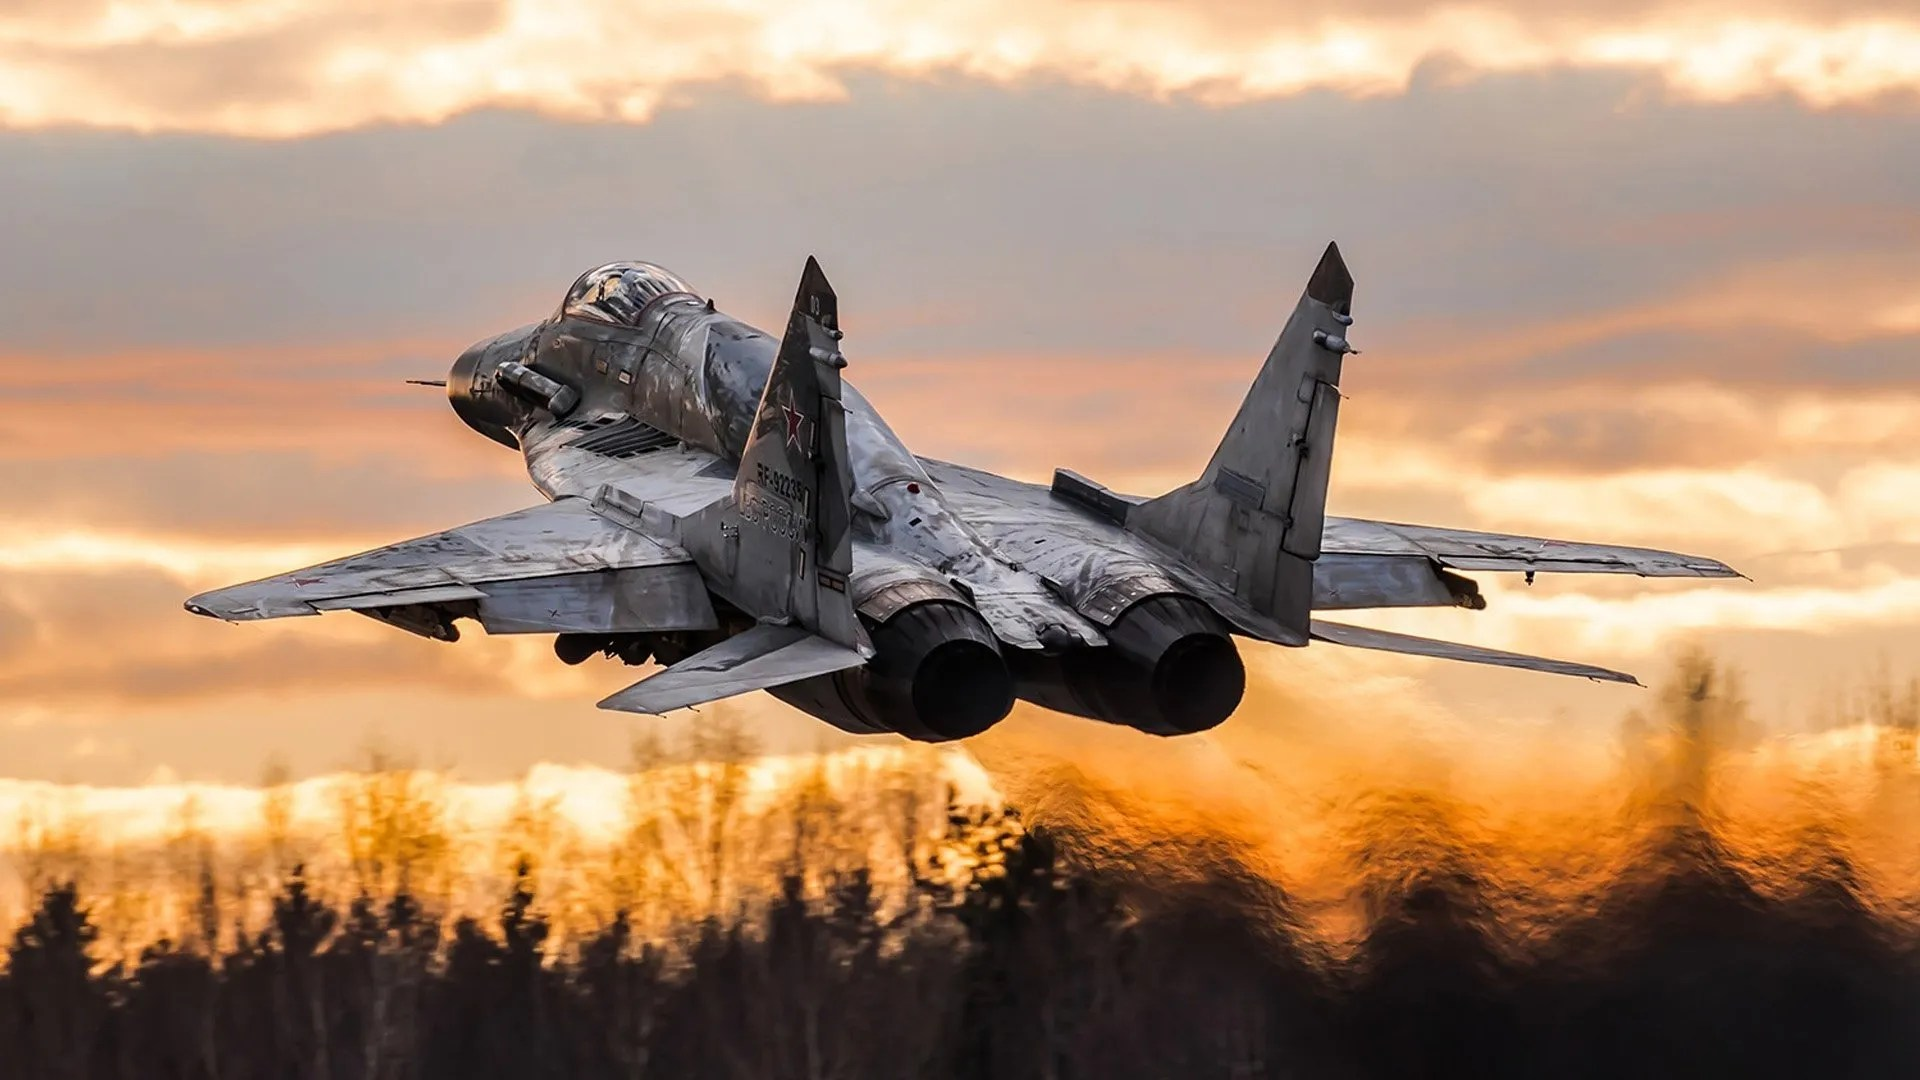 Mikoyan MiG-29 Jet Fighter Aircraft Wallpapers